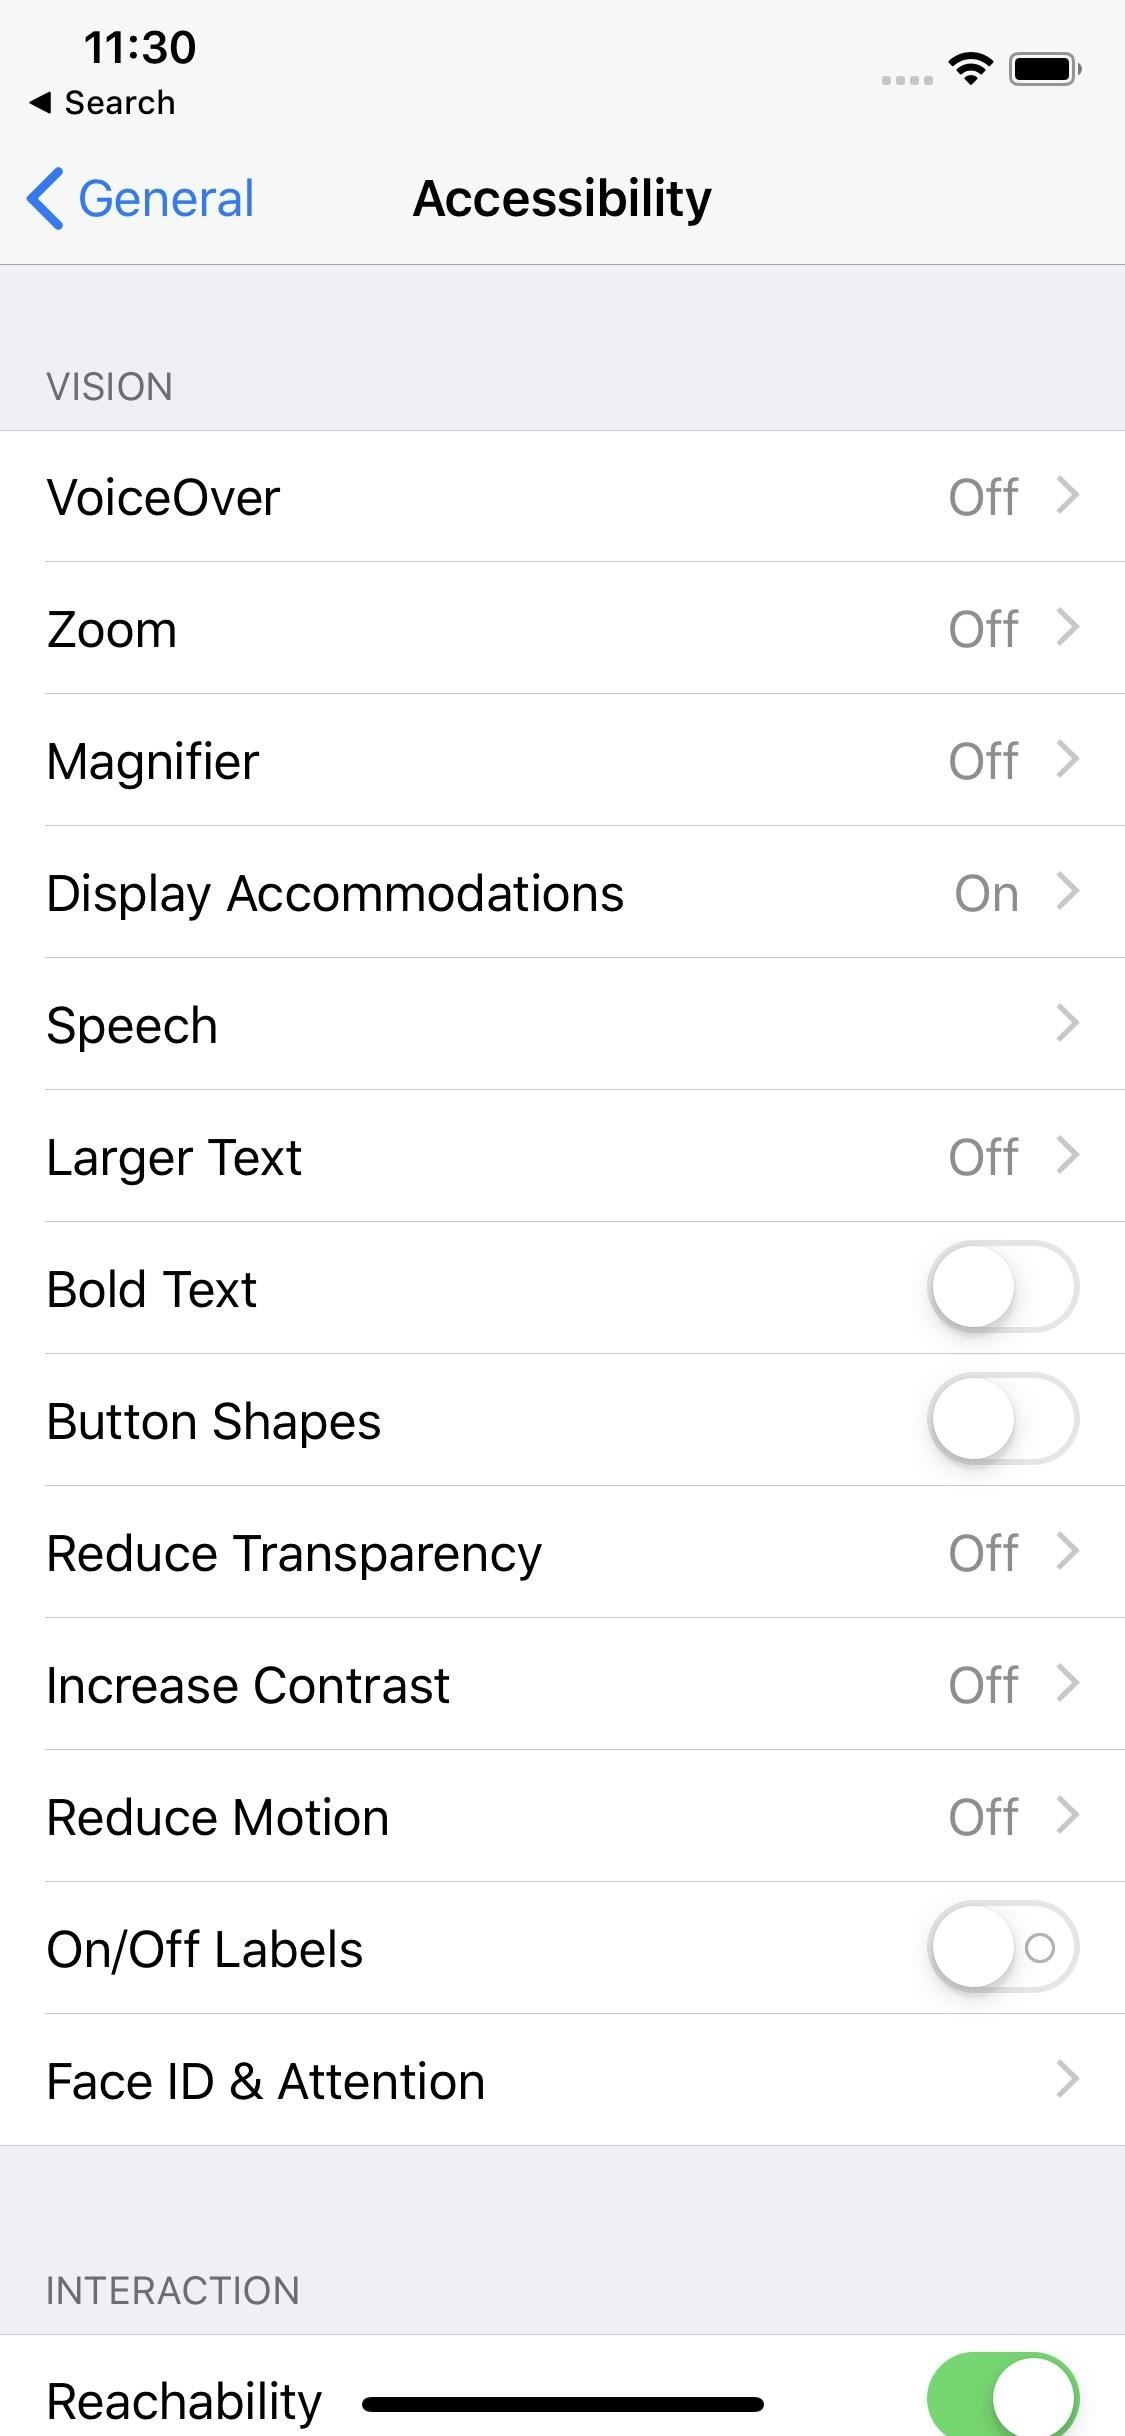 The Ultimate Guide to Customizing Your iPhone « iOS